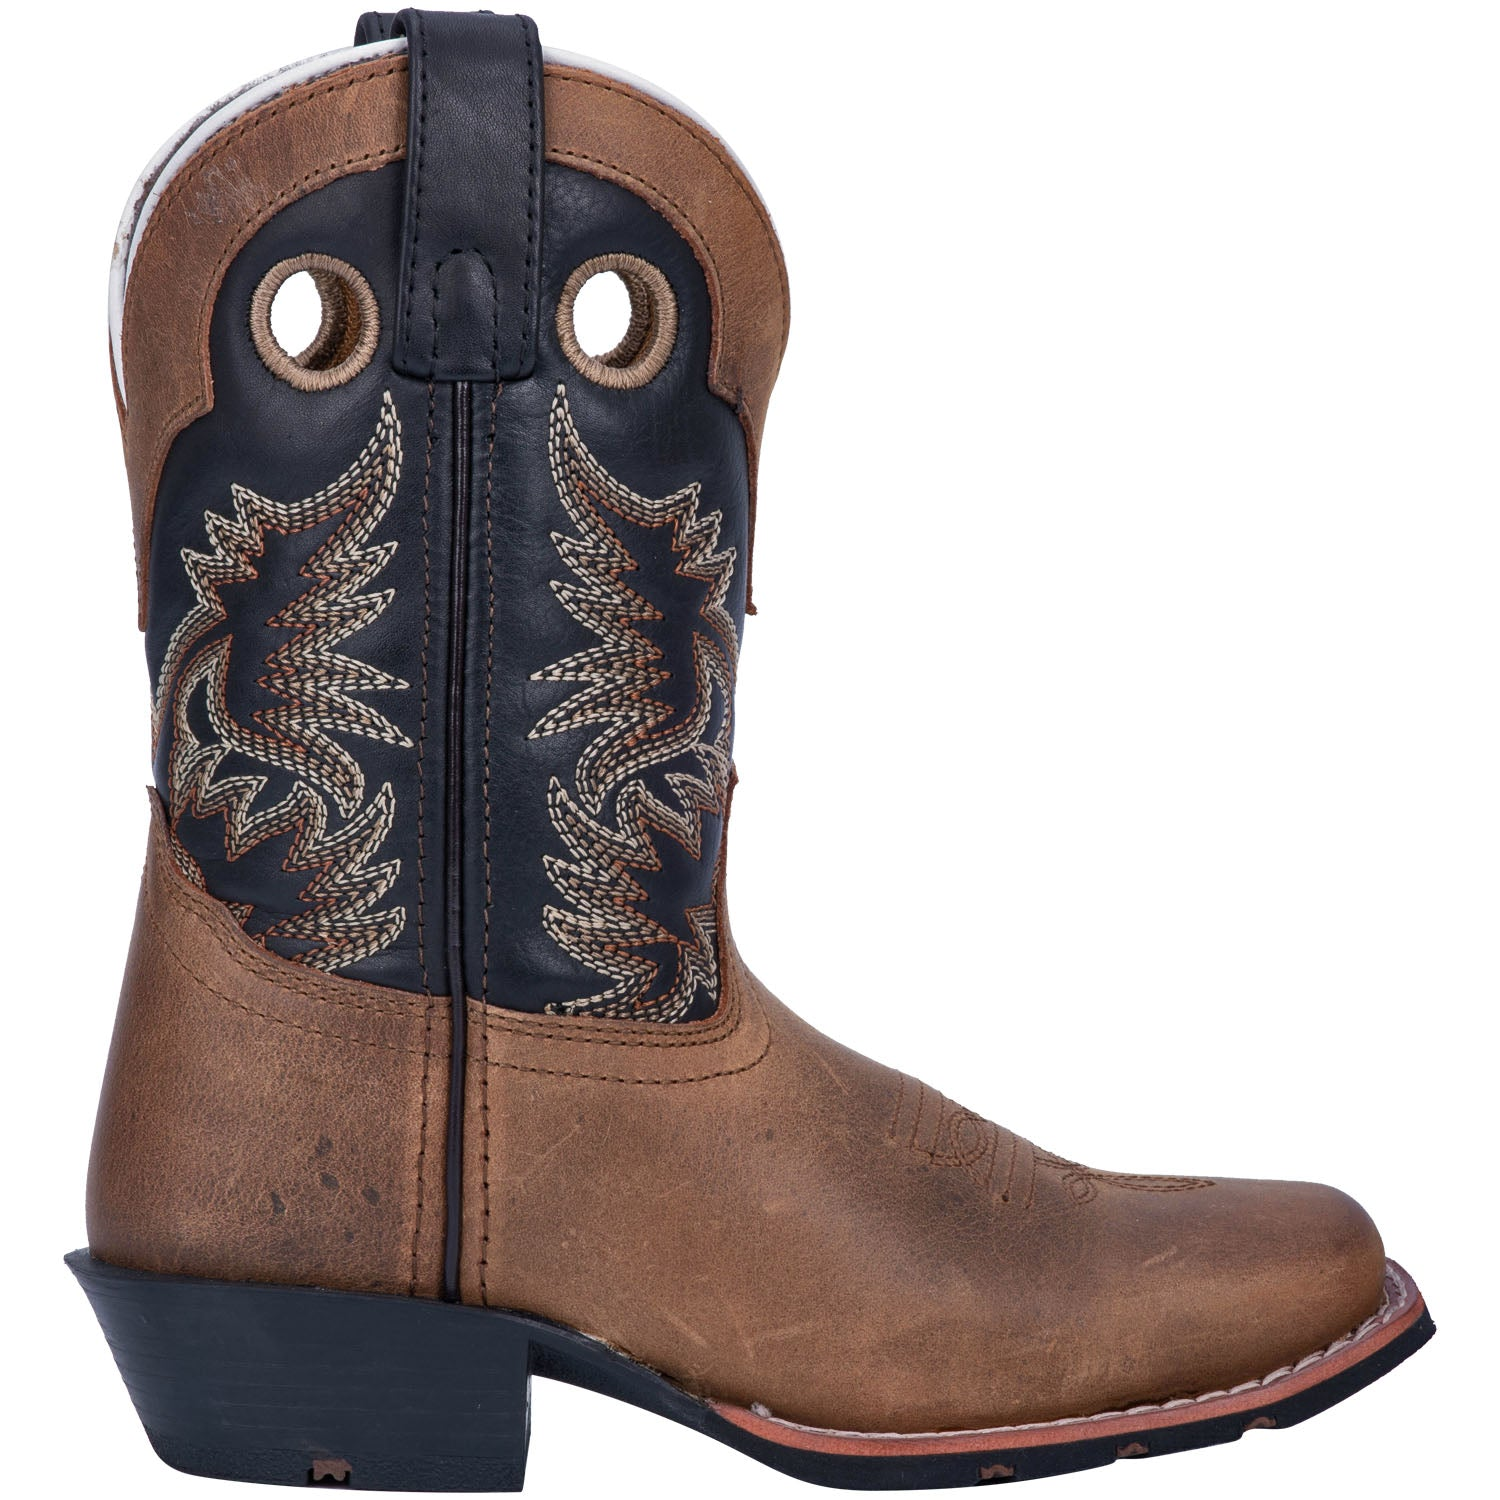 RASCAL LEATHER CHILDREN'S BOOT 4254085611562